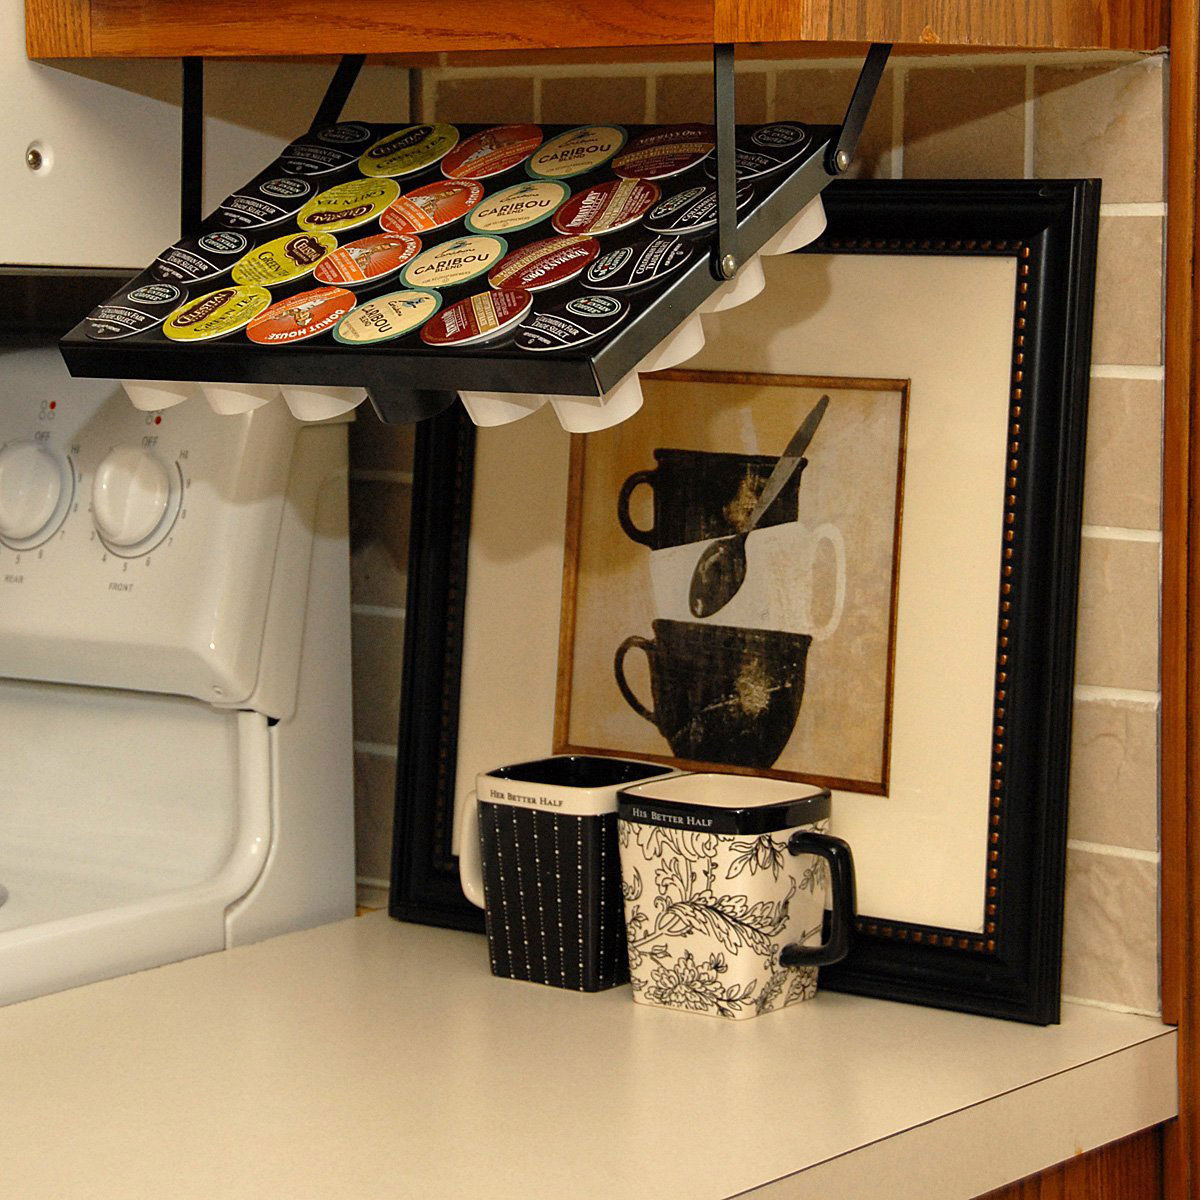 Merveilleux Under Cabinet Keurig K Cup Holder